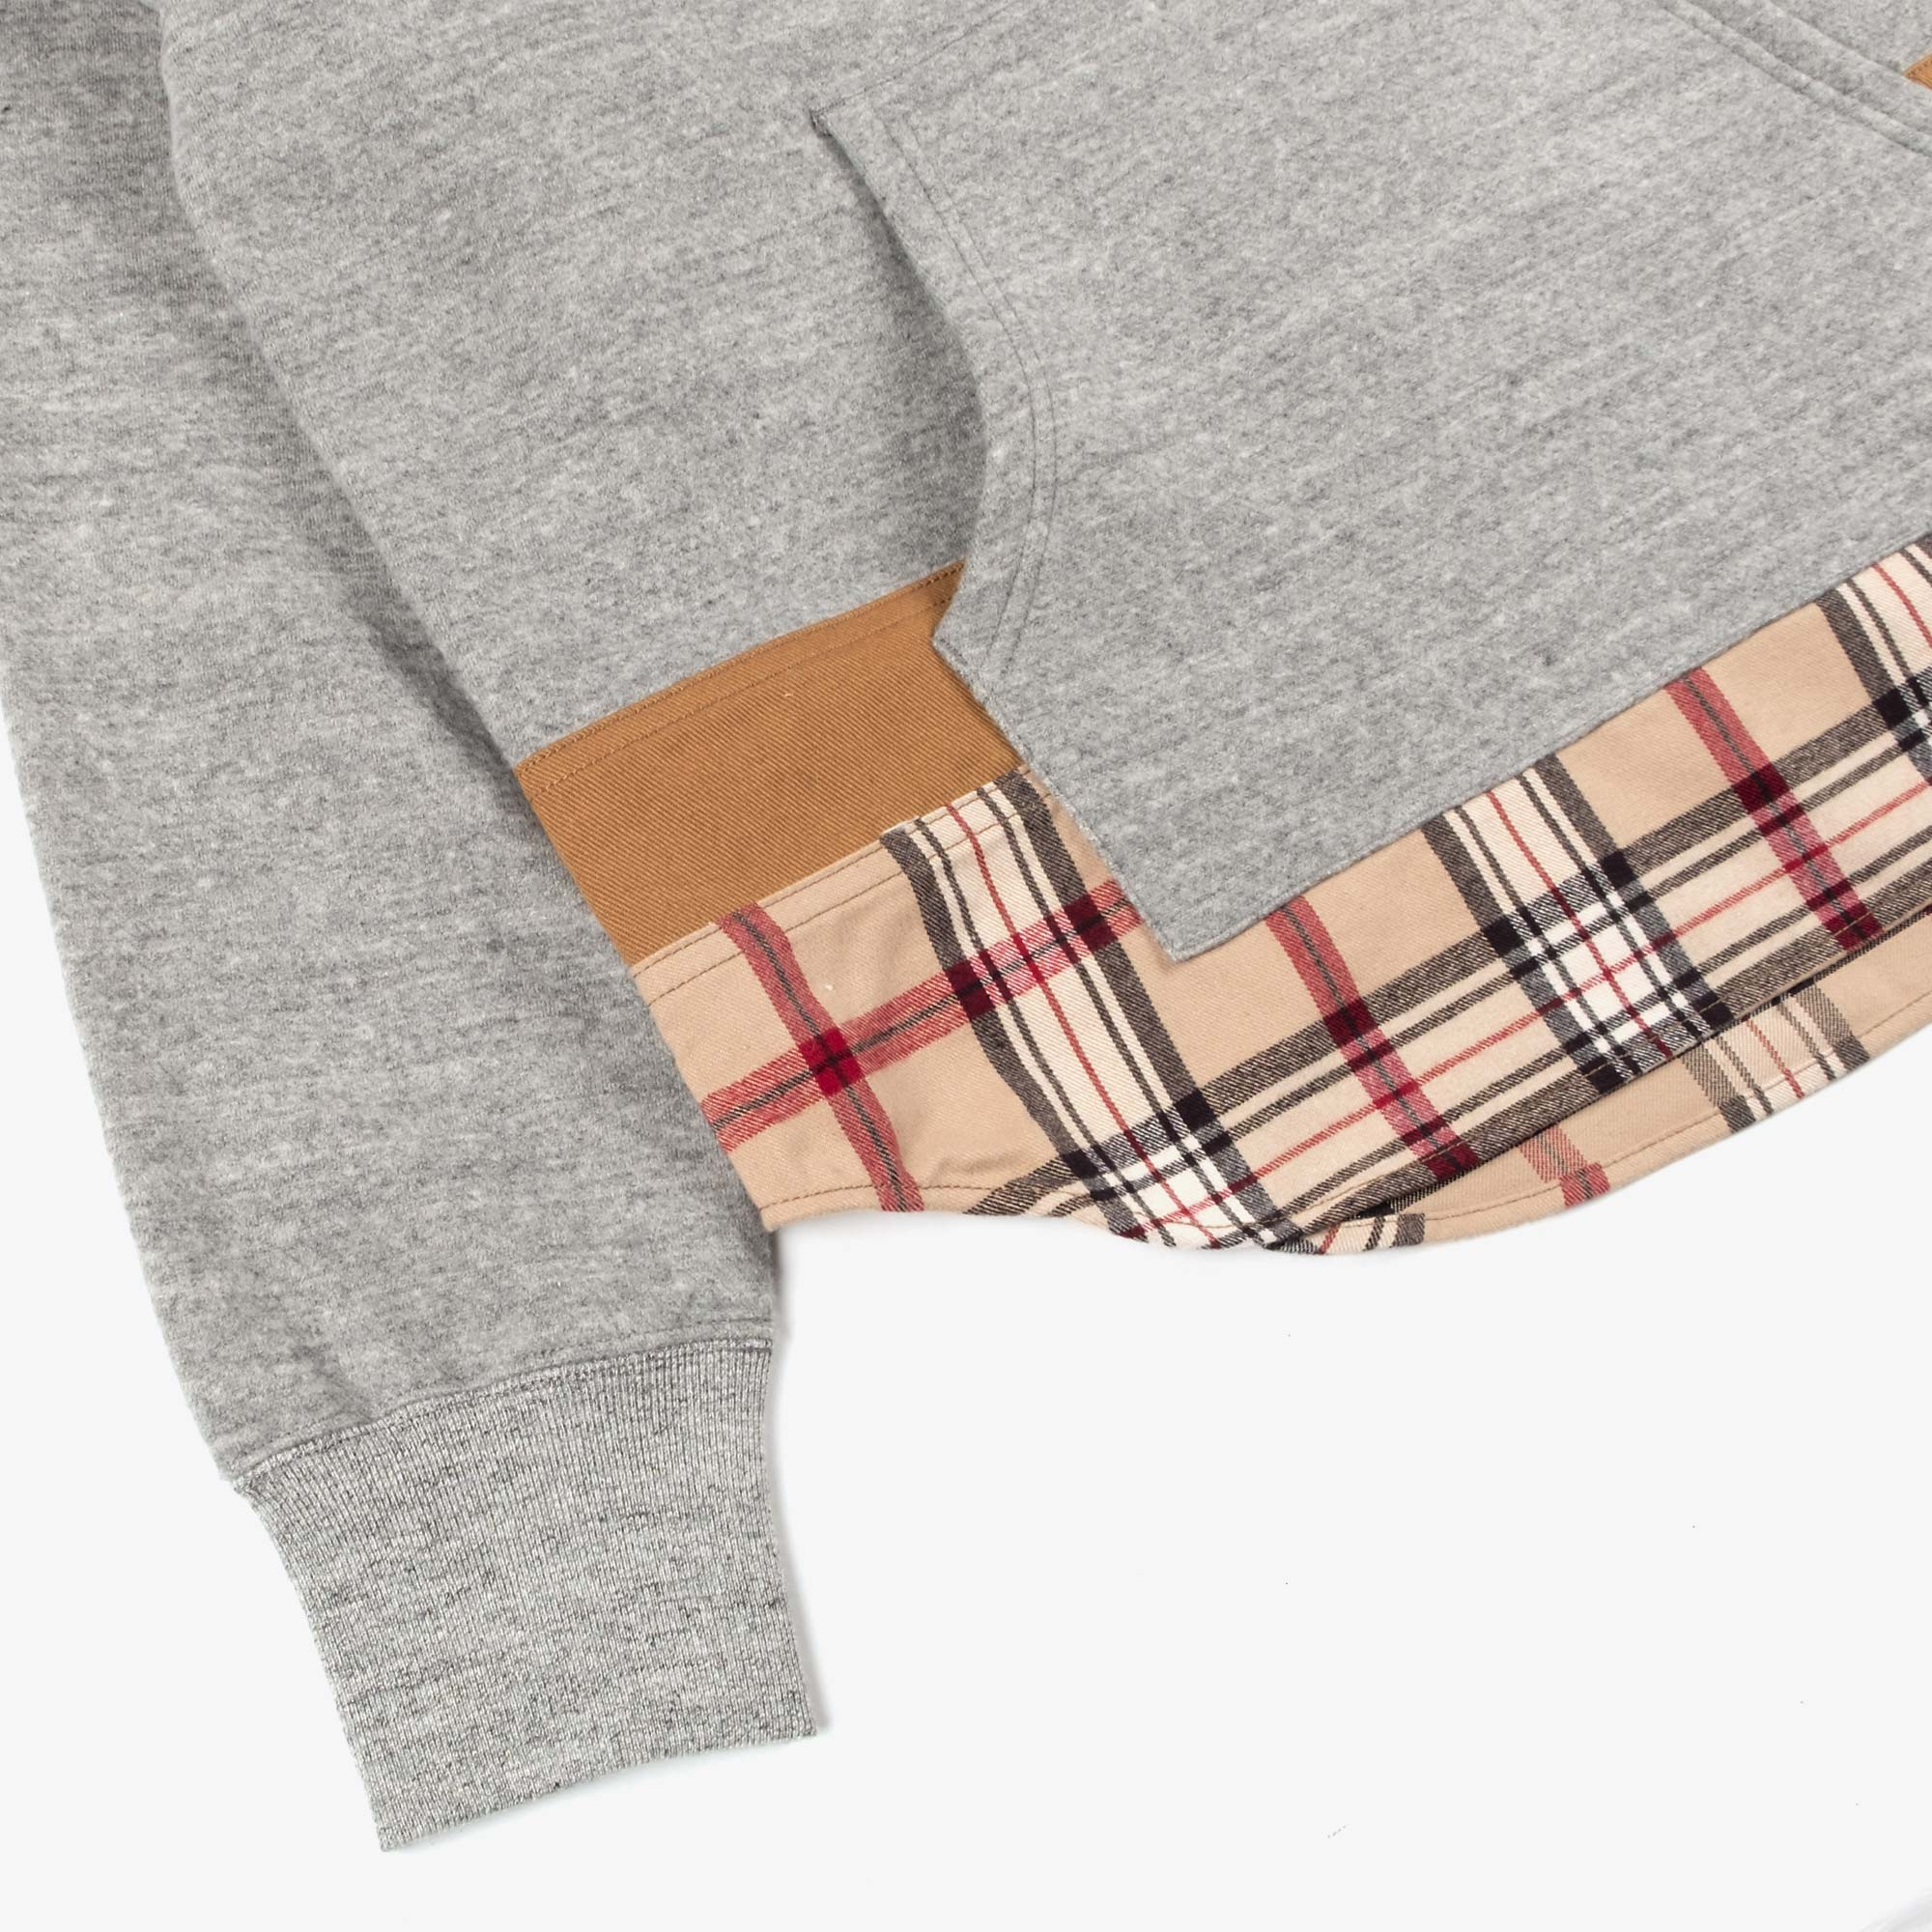 Comme des Garçons - Homme Checked Hem Pullover Hooded Sweat T004 - Grey / Multi 6